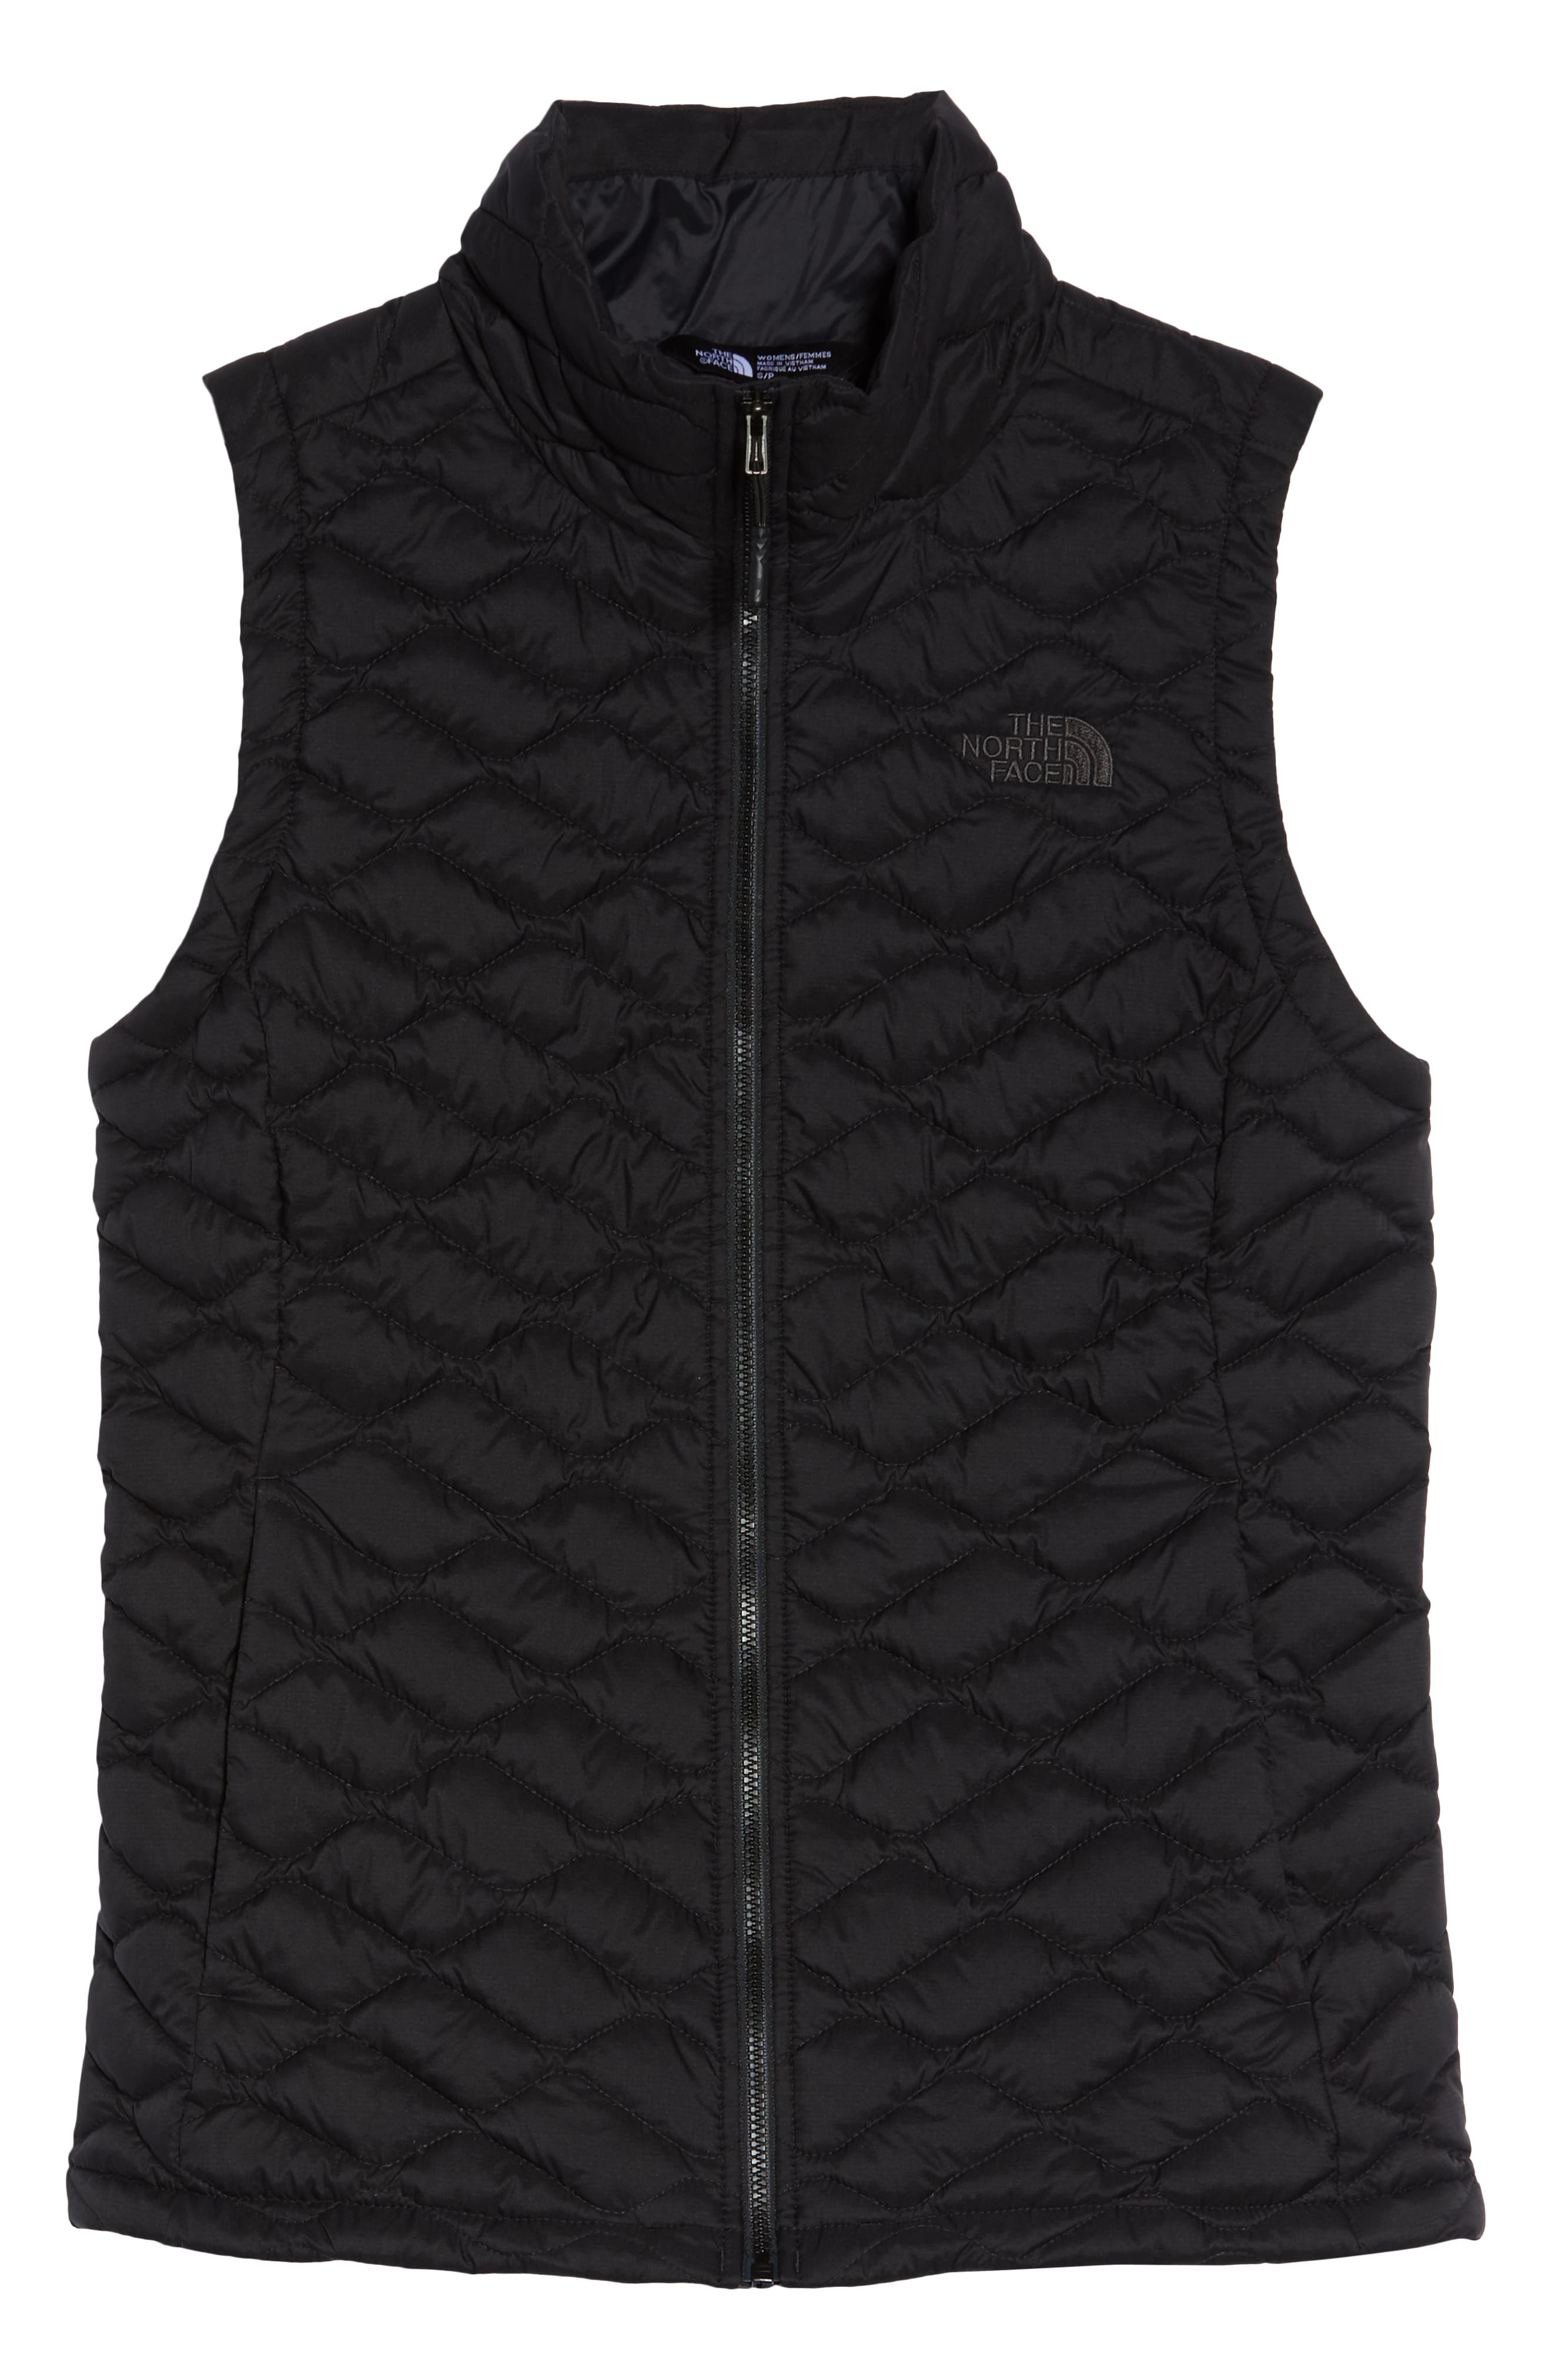 THE NORTH FACE,                             ThermoBall<sup>™</sup> PrimaLoft<sup>®</sup> Vest,                             Alternate thumbnail 6, color,                             TNF BLACK MATTE